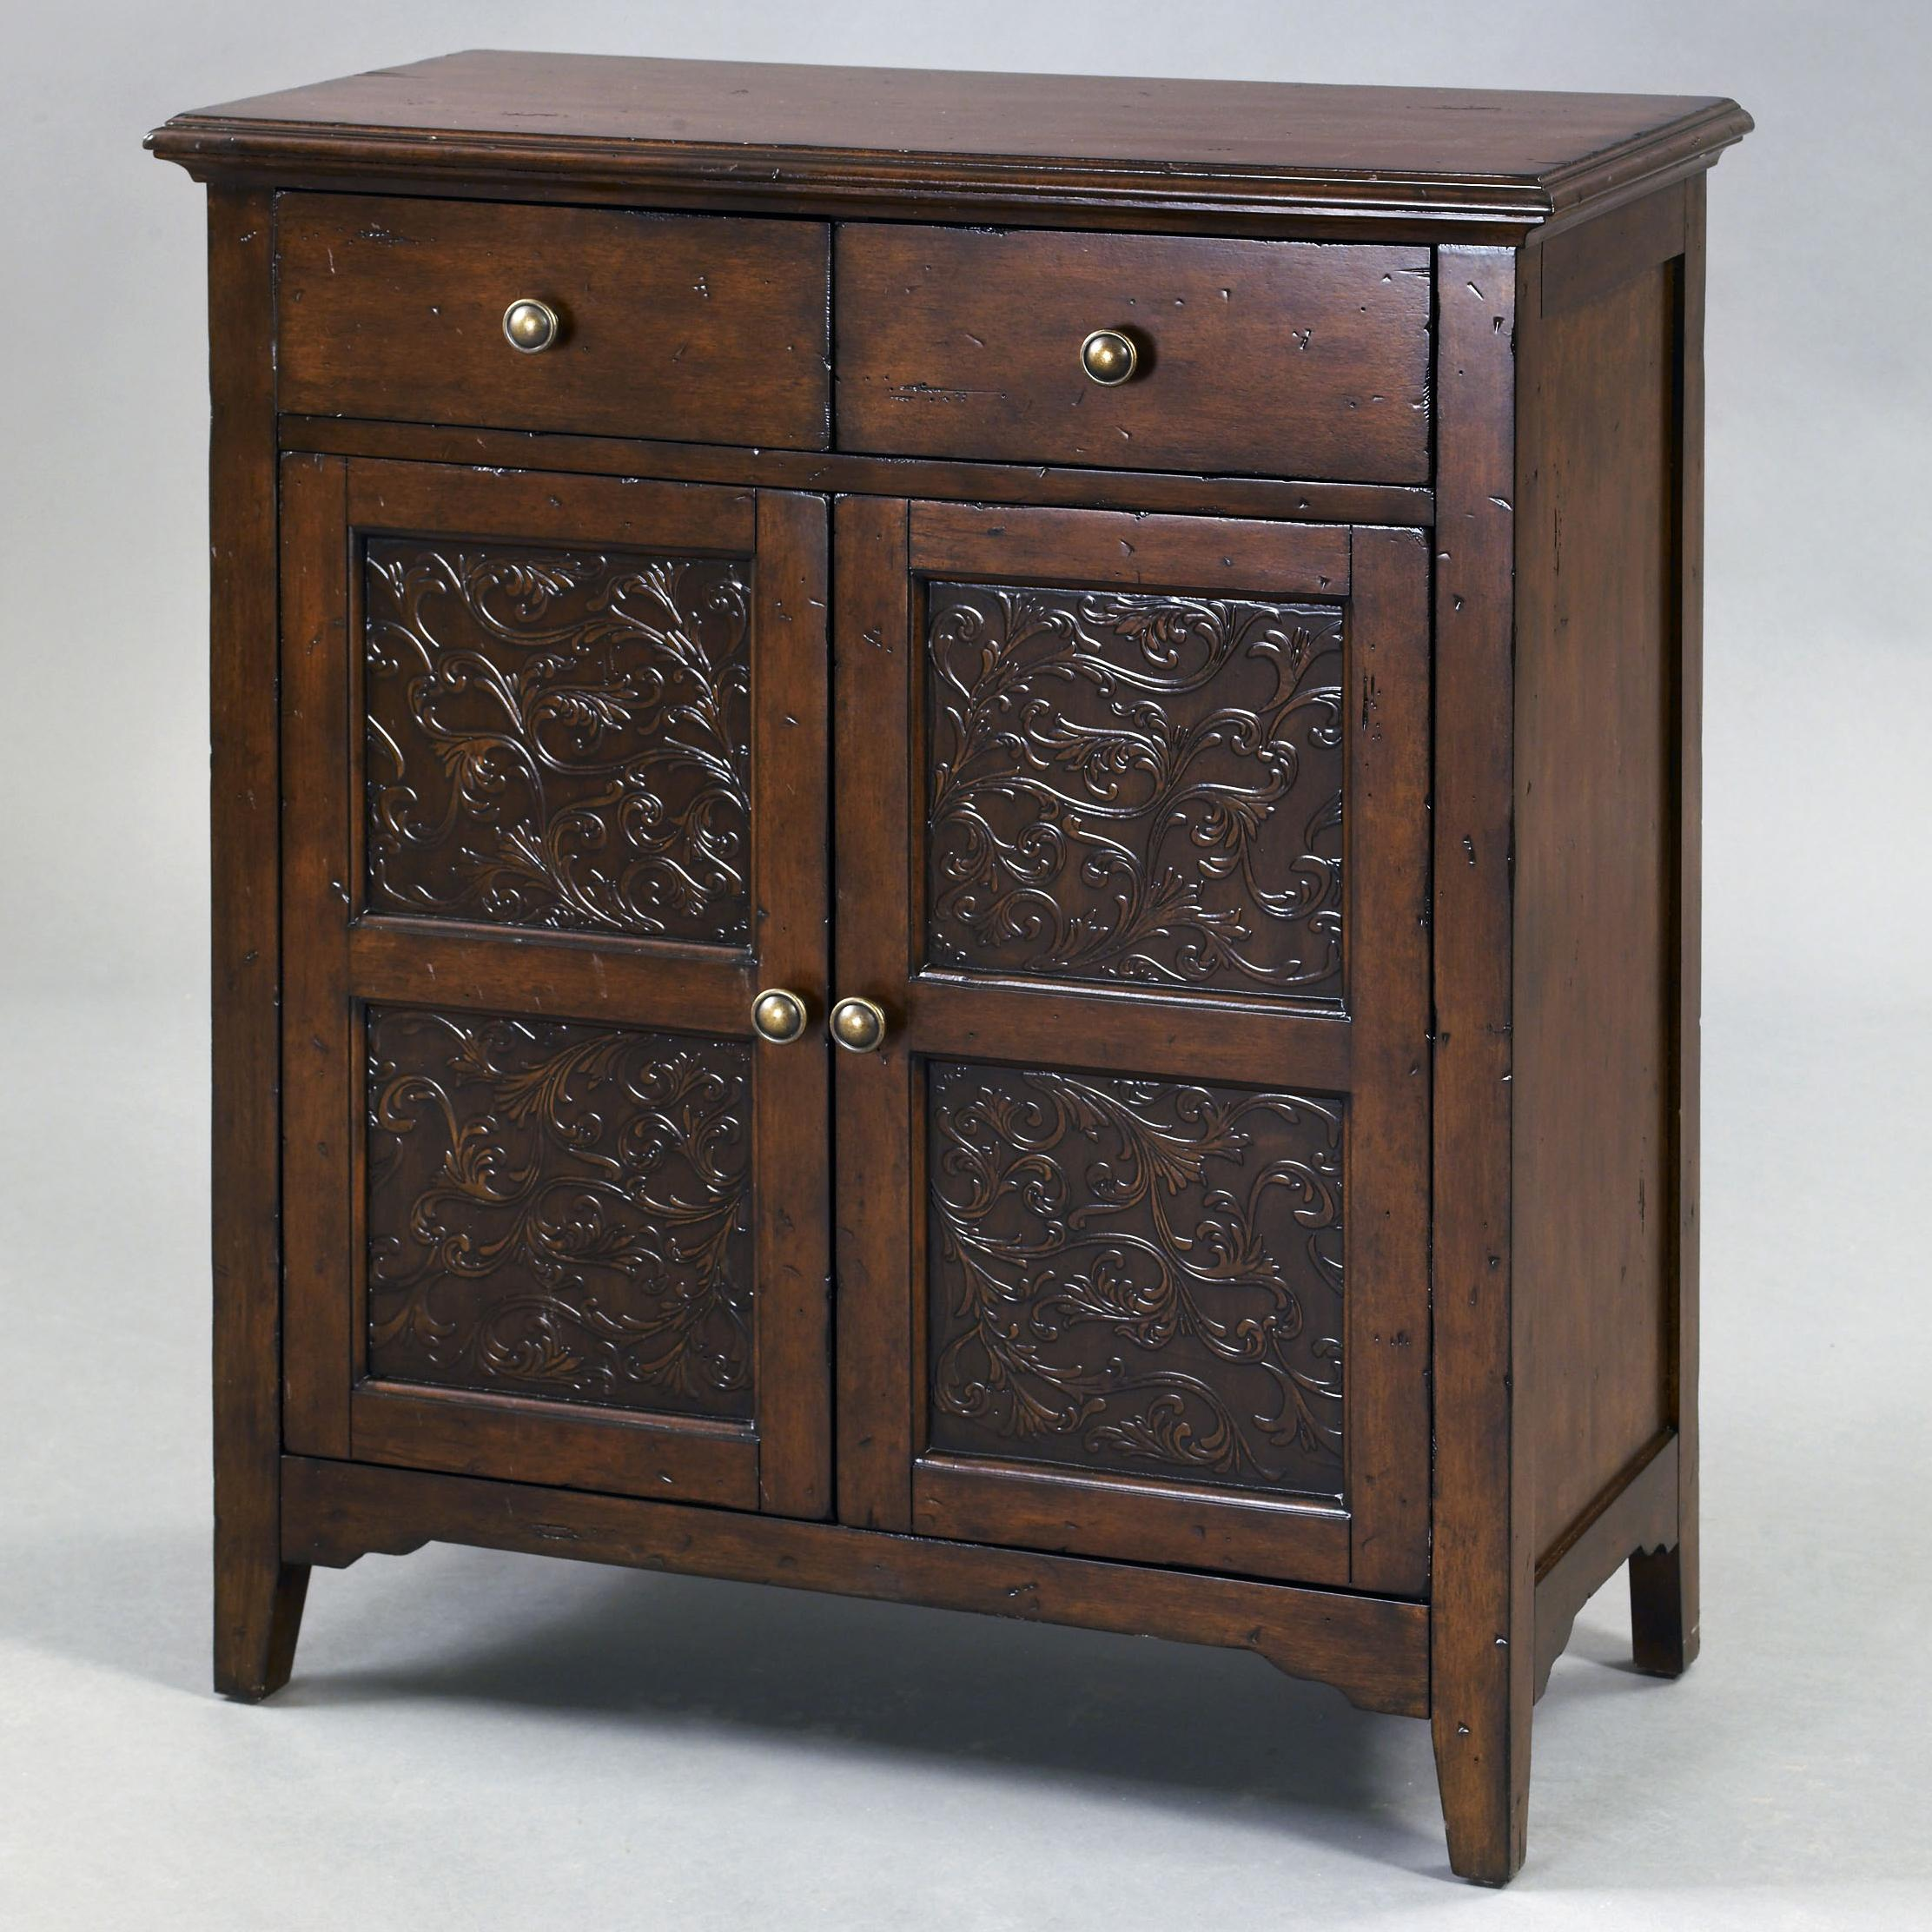 Accents Smiley Accent Cabinet With Two Drawers With Faux Worked Metal Front  By Pulaski Furniture